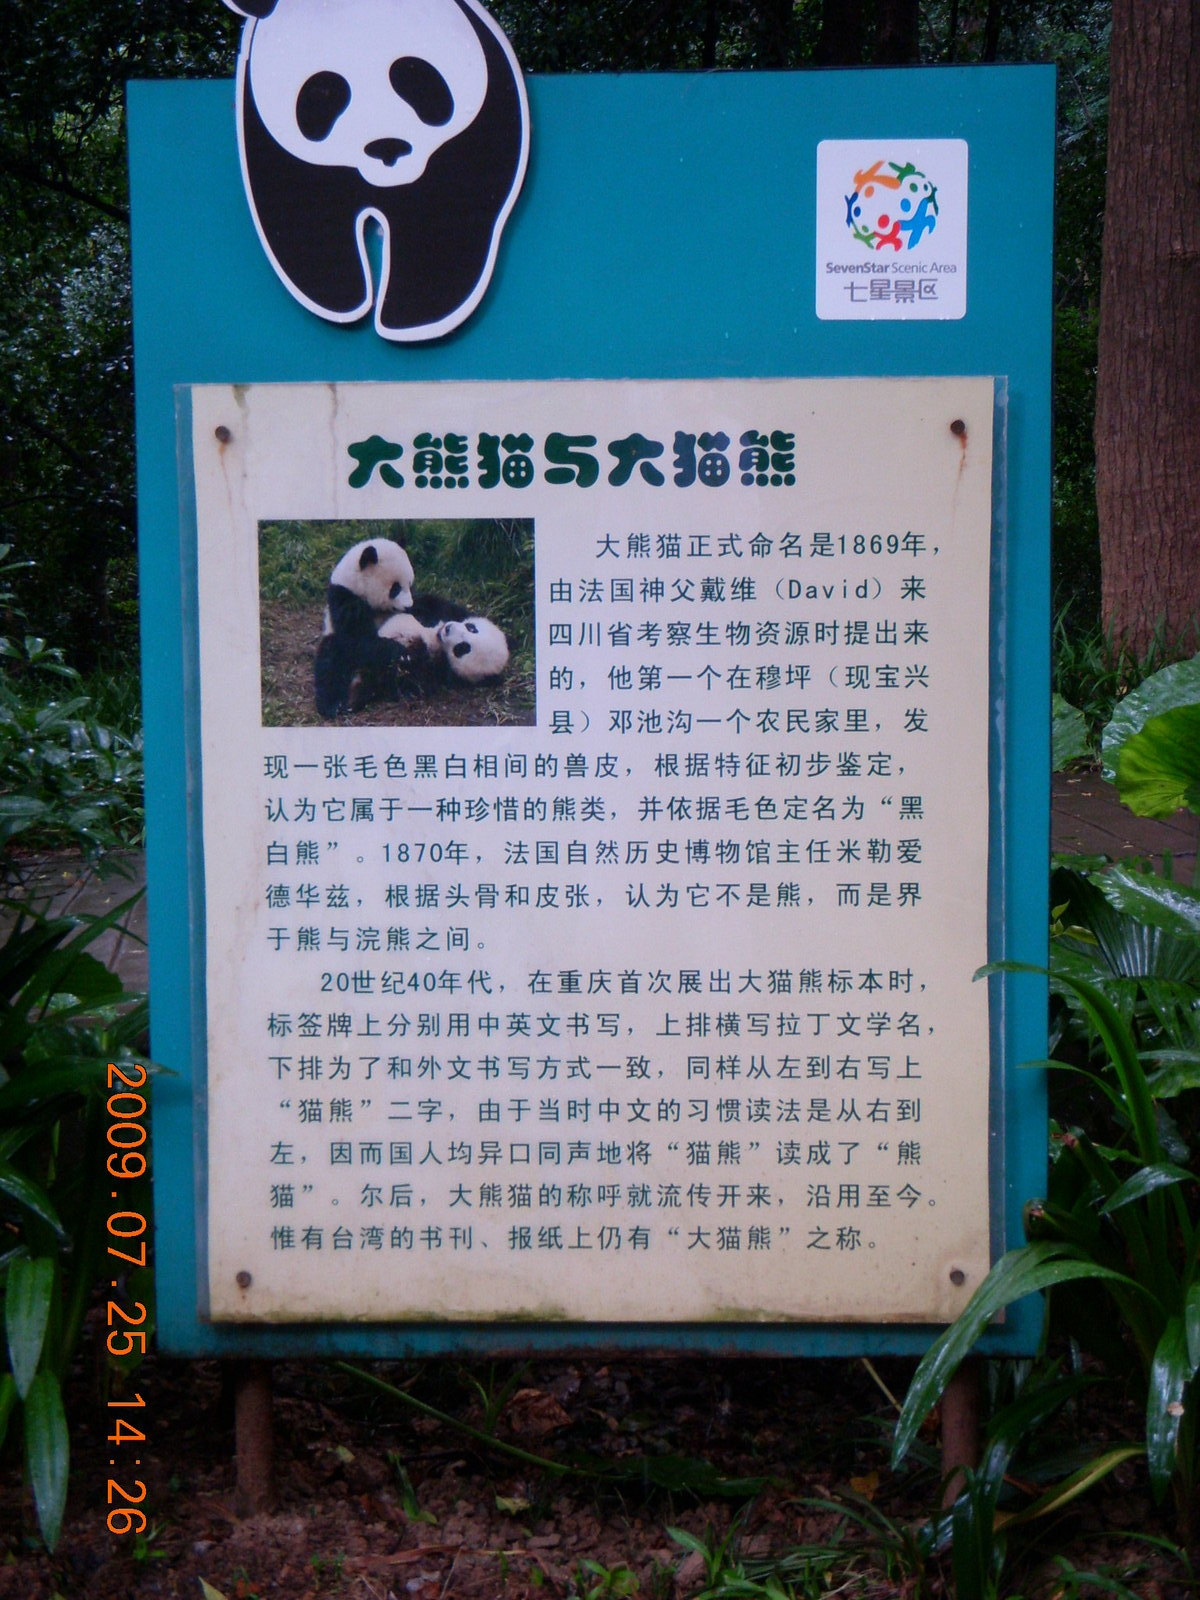 China eclipse - Guilin SevenStar park - panda exhibit sign